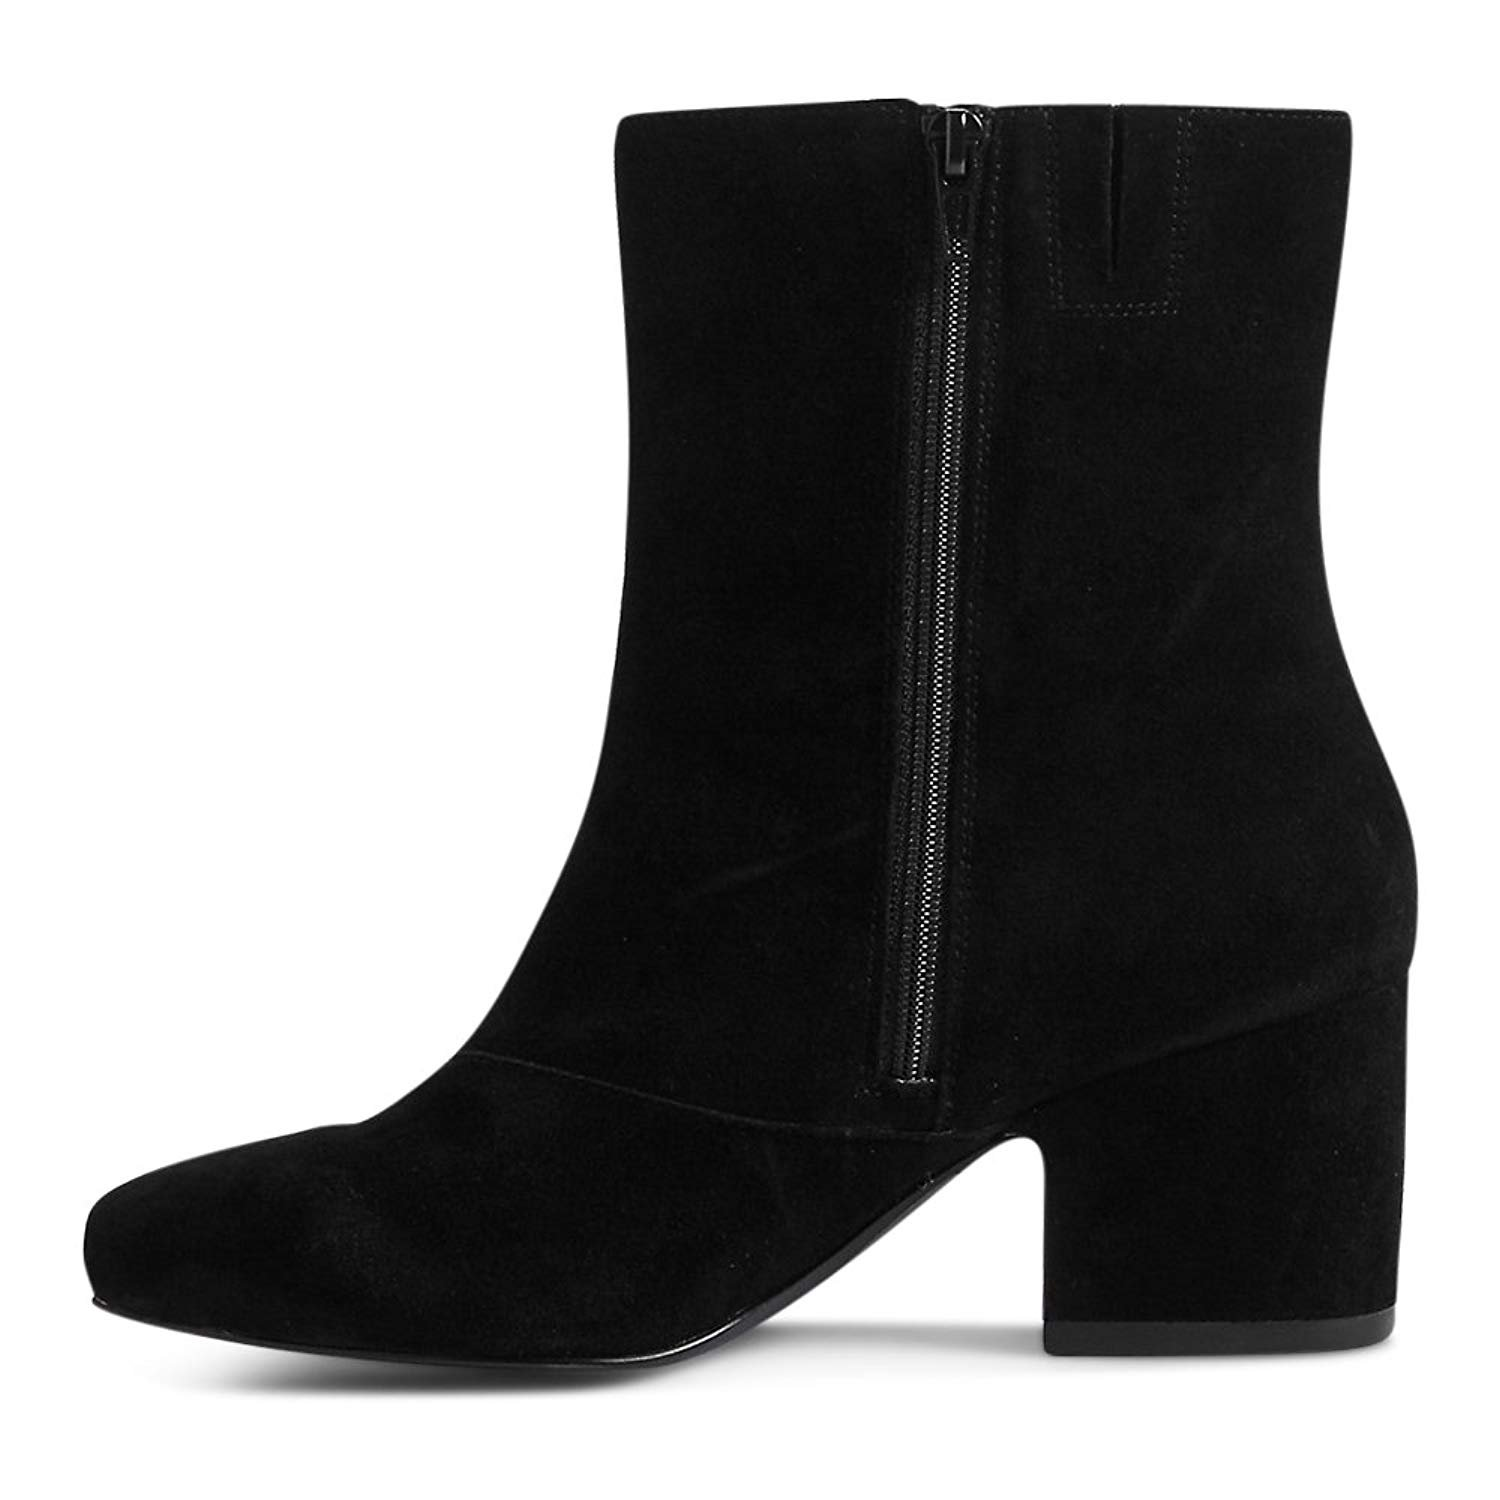 3f4df8ec70d Ex Marks   Spencer M S Collection T026340W Wide Fit Suede Block Heel Ankle  Boots RRP £65 - Black - UK 8  Amazon.co.uk  Shoes   Bags